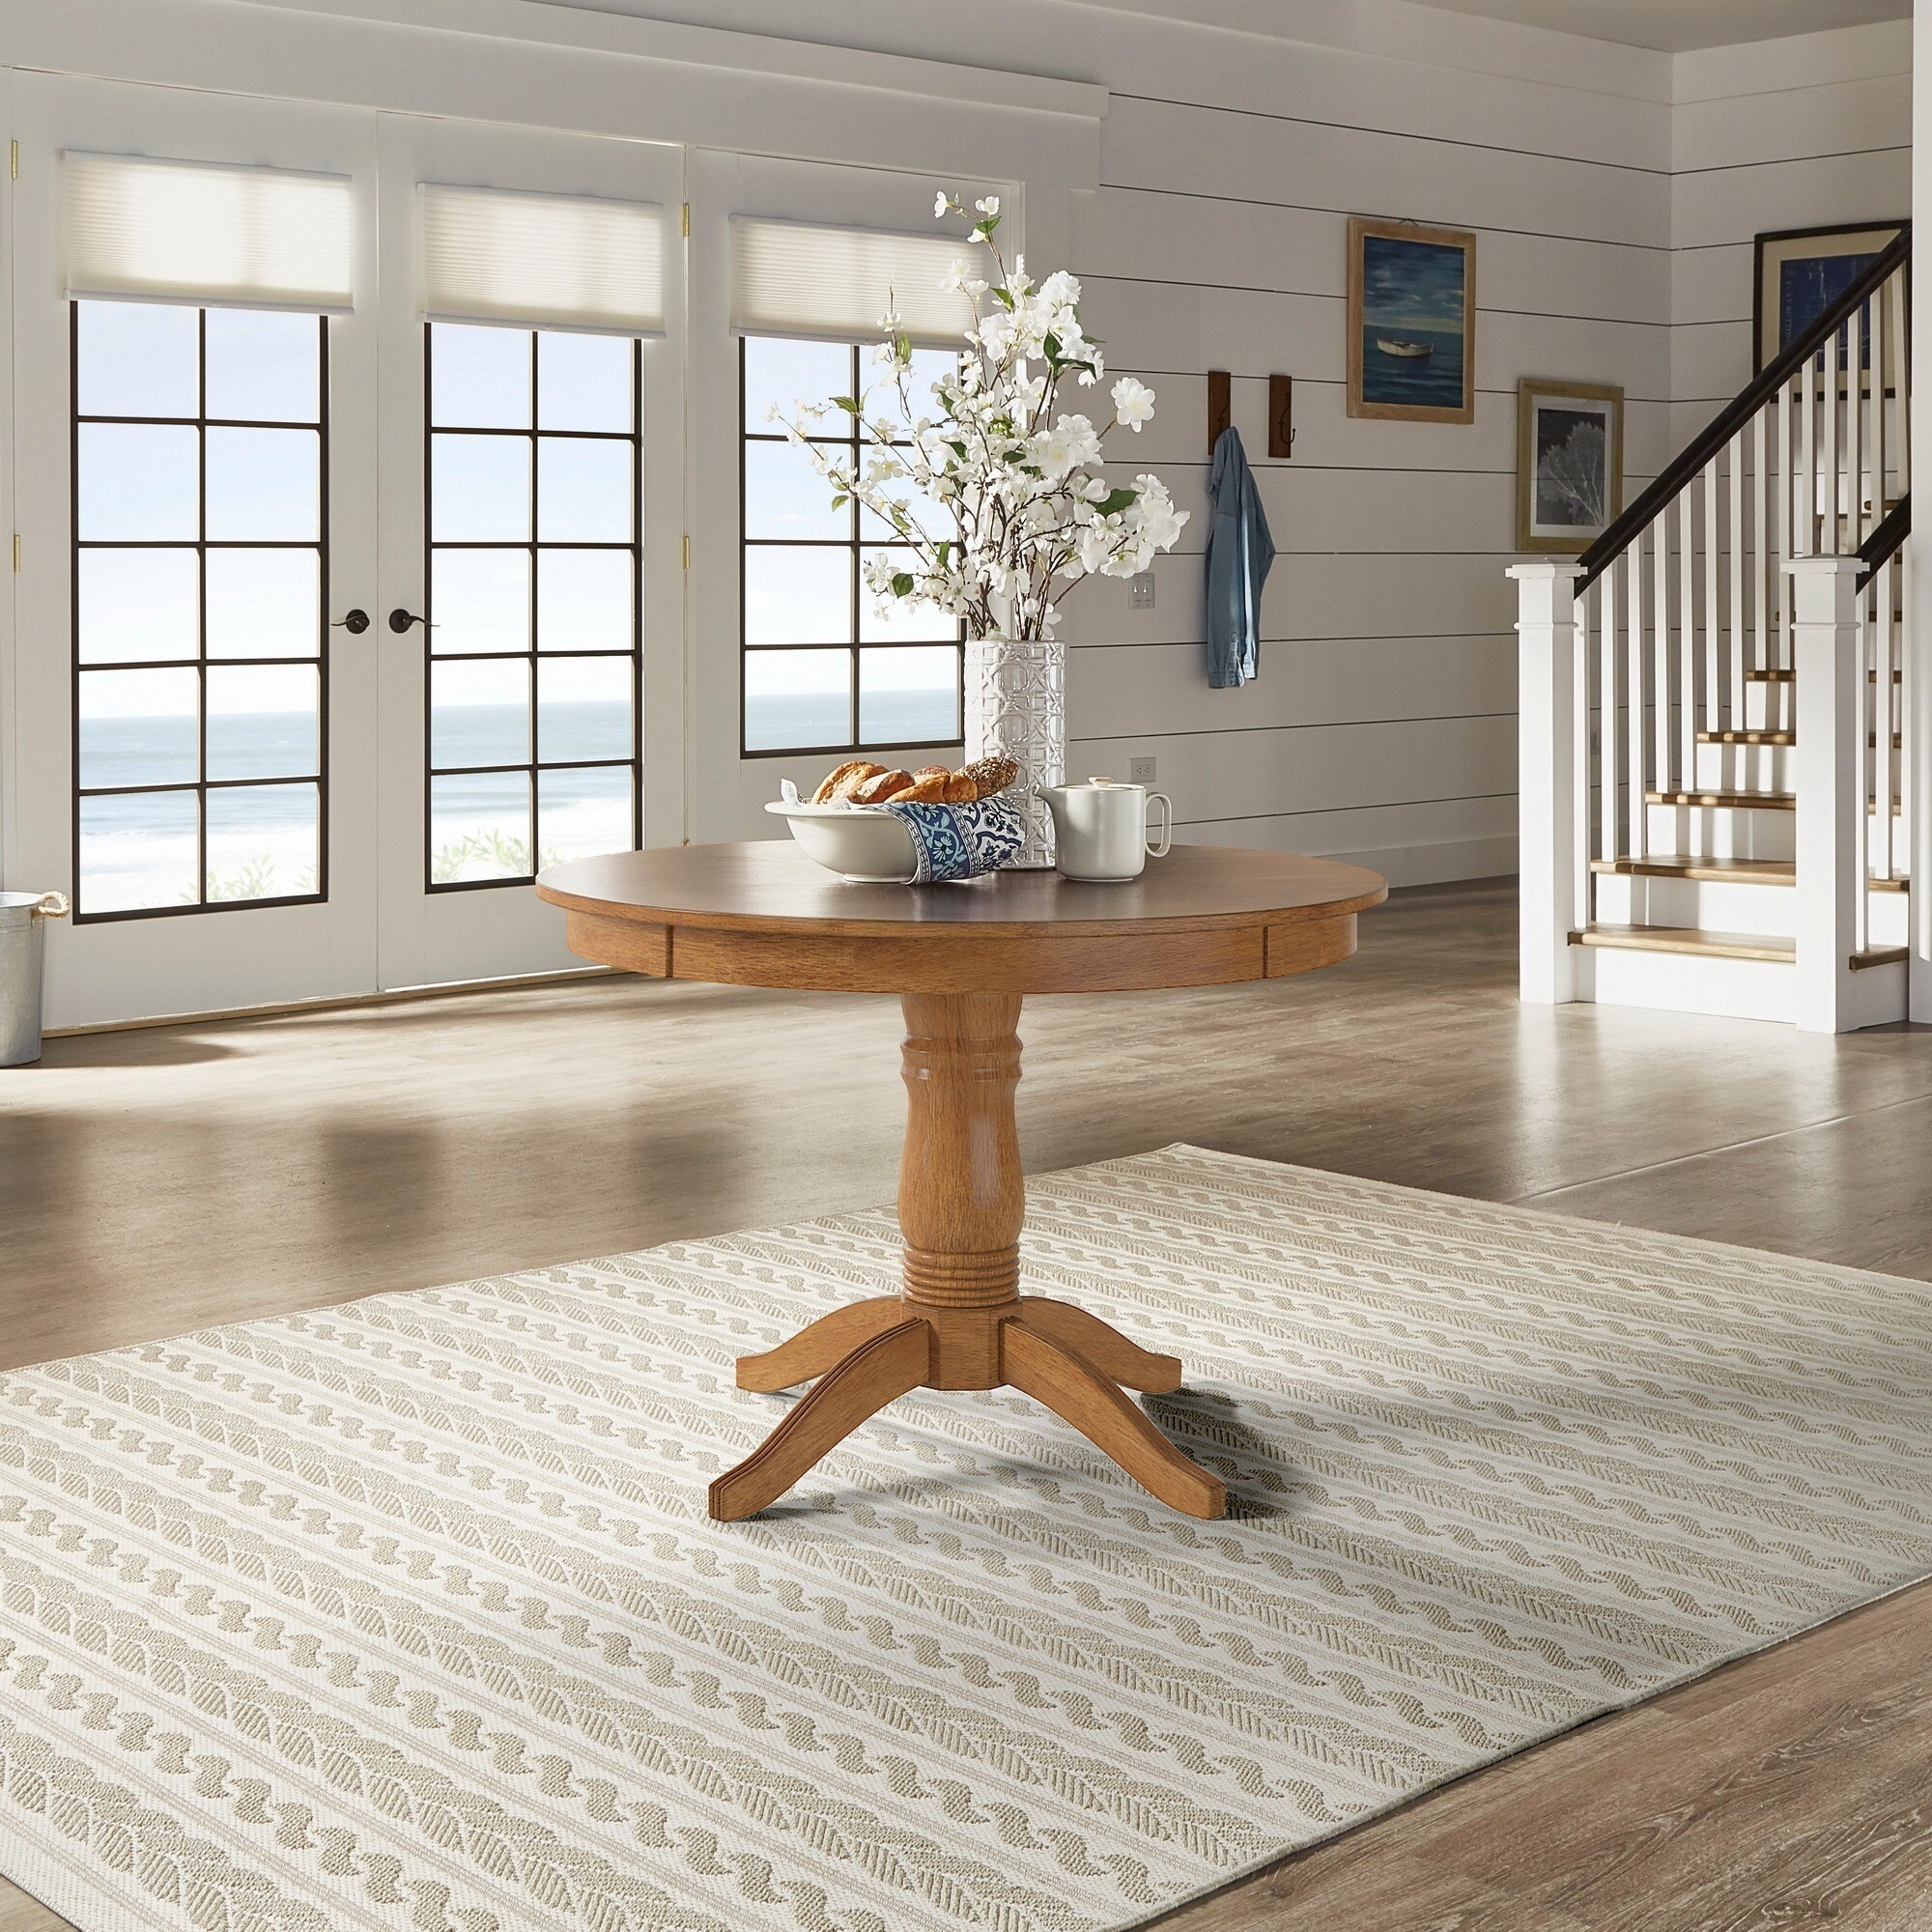 Wilmington Ii Round Pedestal Base Dining Tableinspire Regarding Most Recently Released Corvena 48'' Pedestal Dining Tables (View 5 of 15)